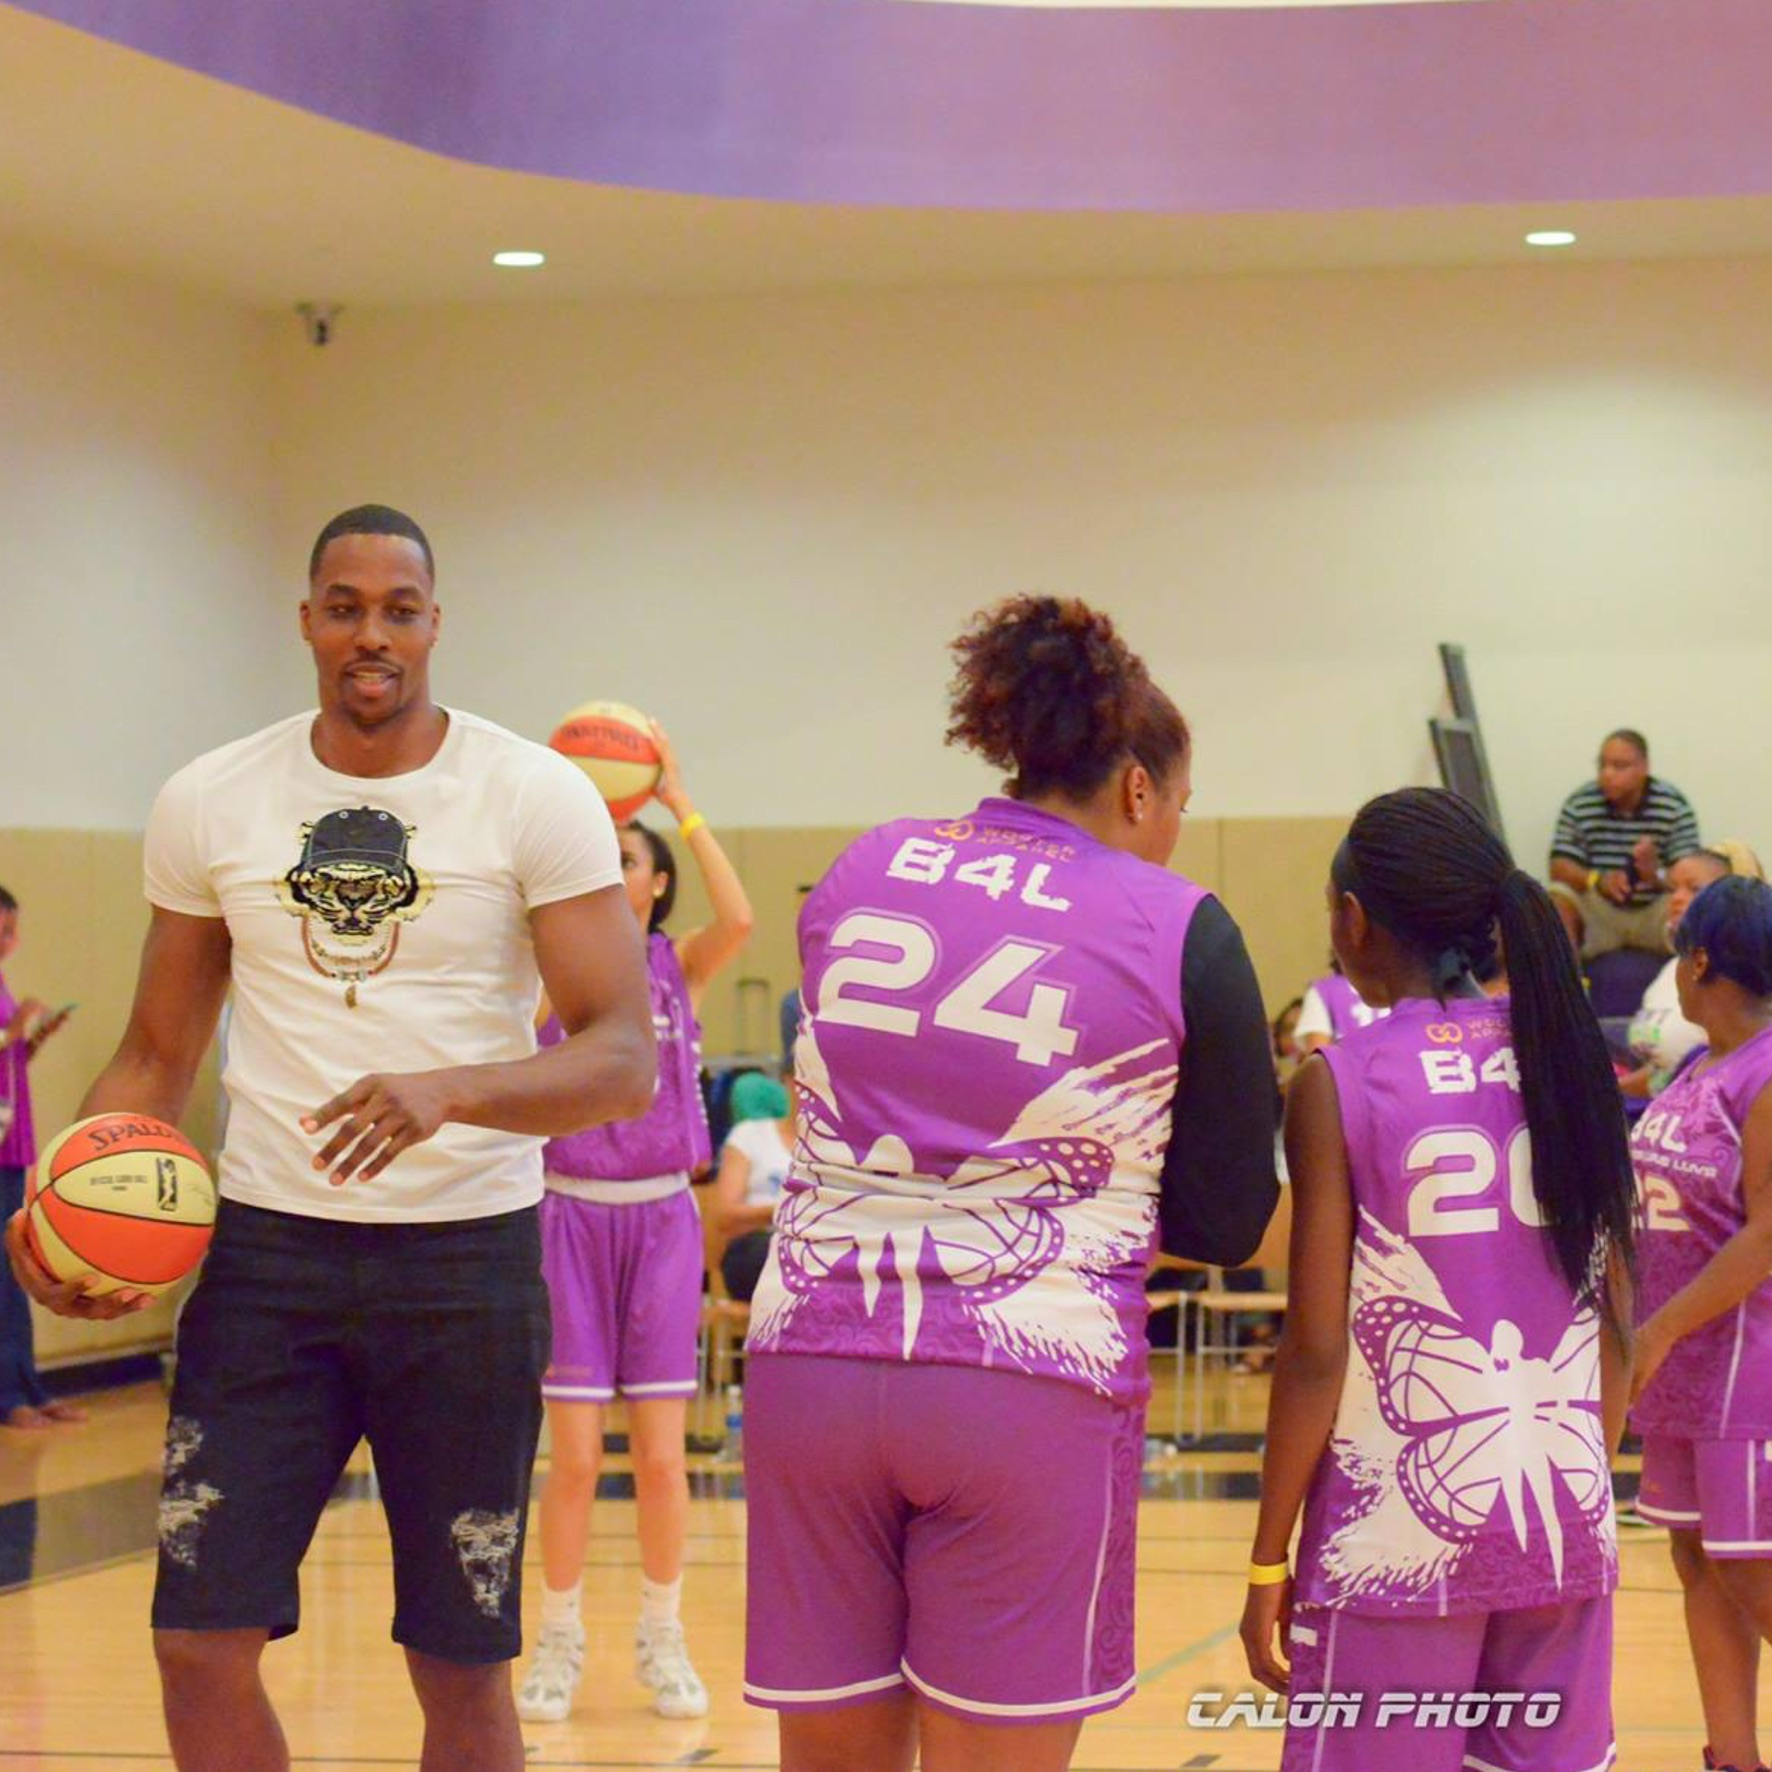 With a roster including actresses, entertainers, music and media personalities, some of the celebrity coaches for Balling 4 Lupus have ranged from Tiffany Hayes (WNBA), Cheryl Ford (WNBA), and Dwight Howard (NBA center and the first ever male coach for the event).